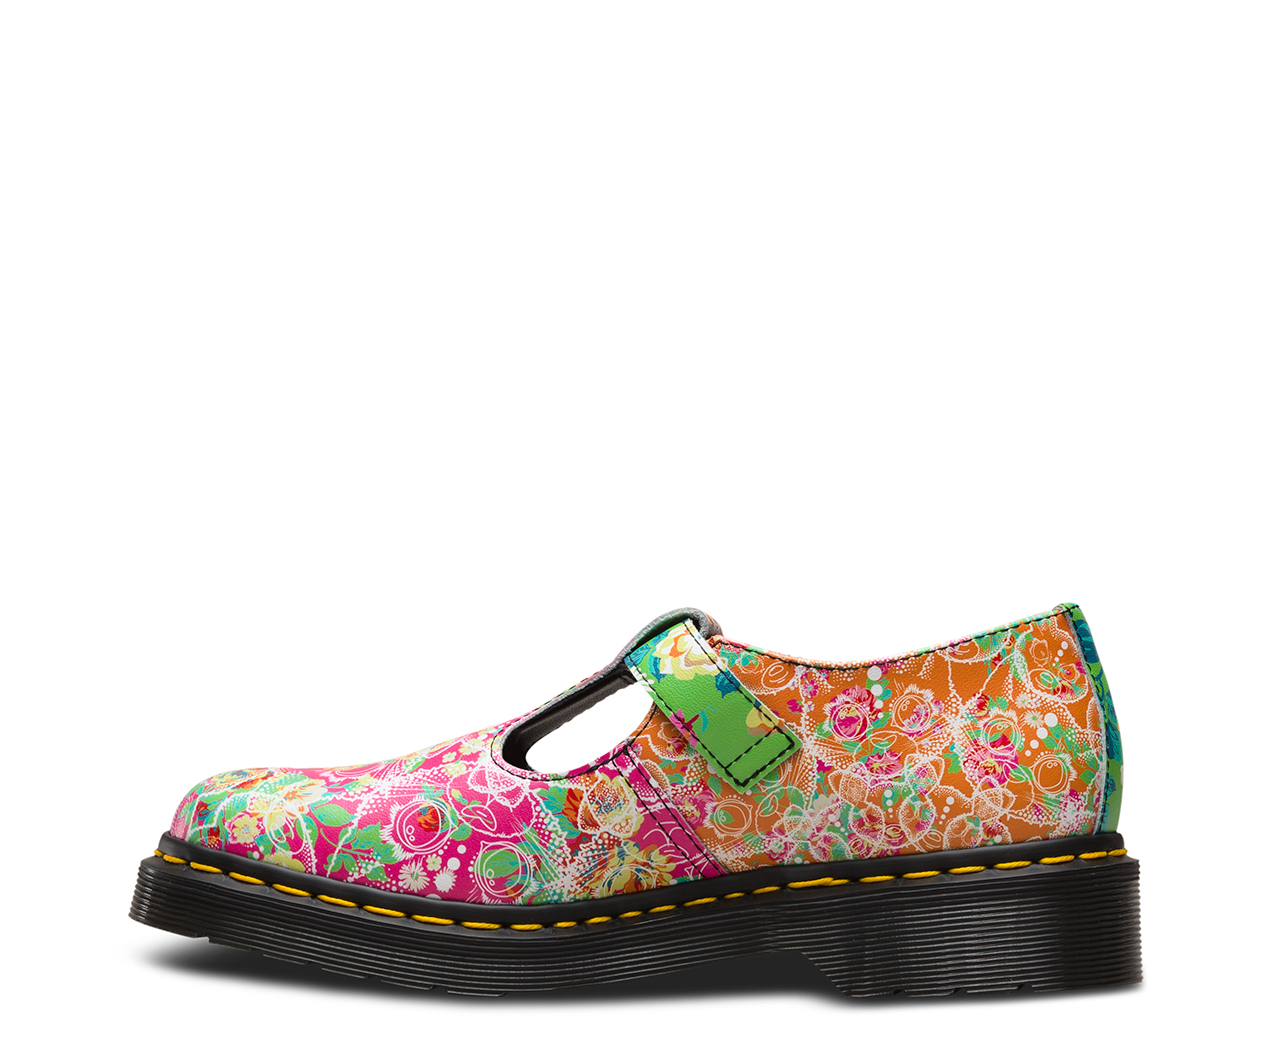 Vegan Dr Martens Shoes Uk Black Friday